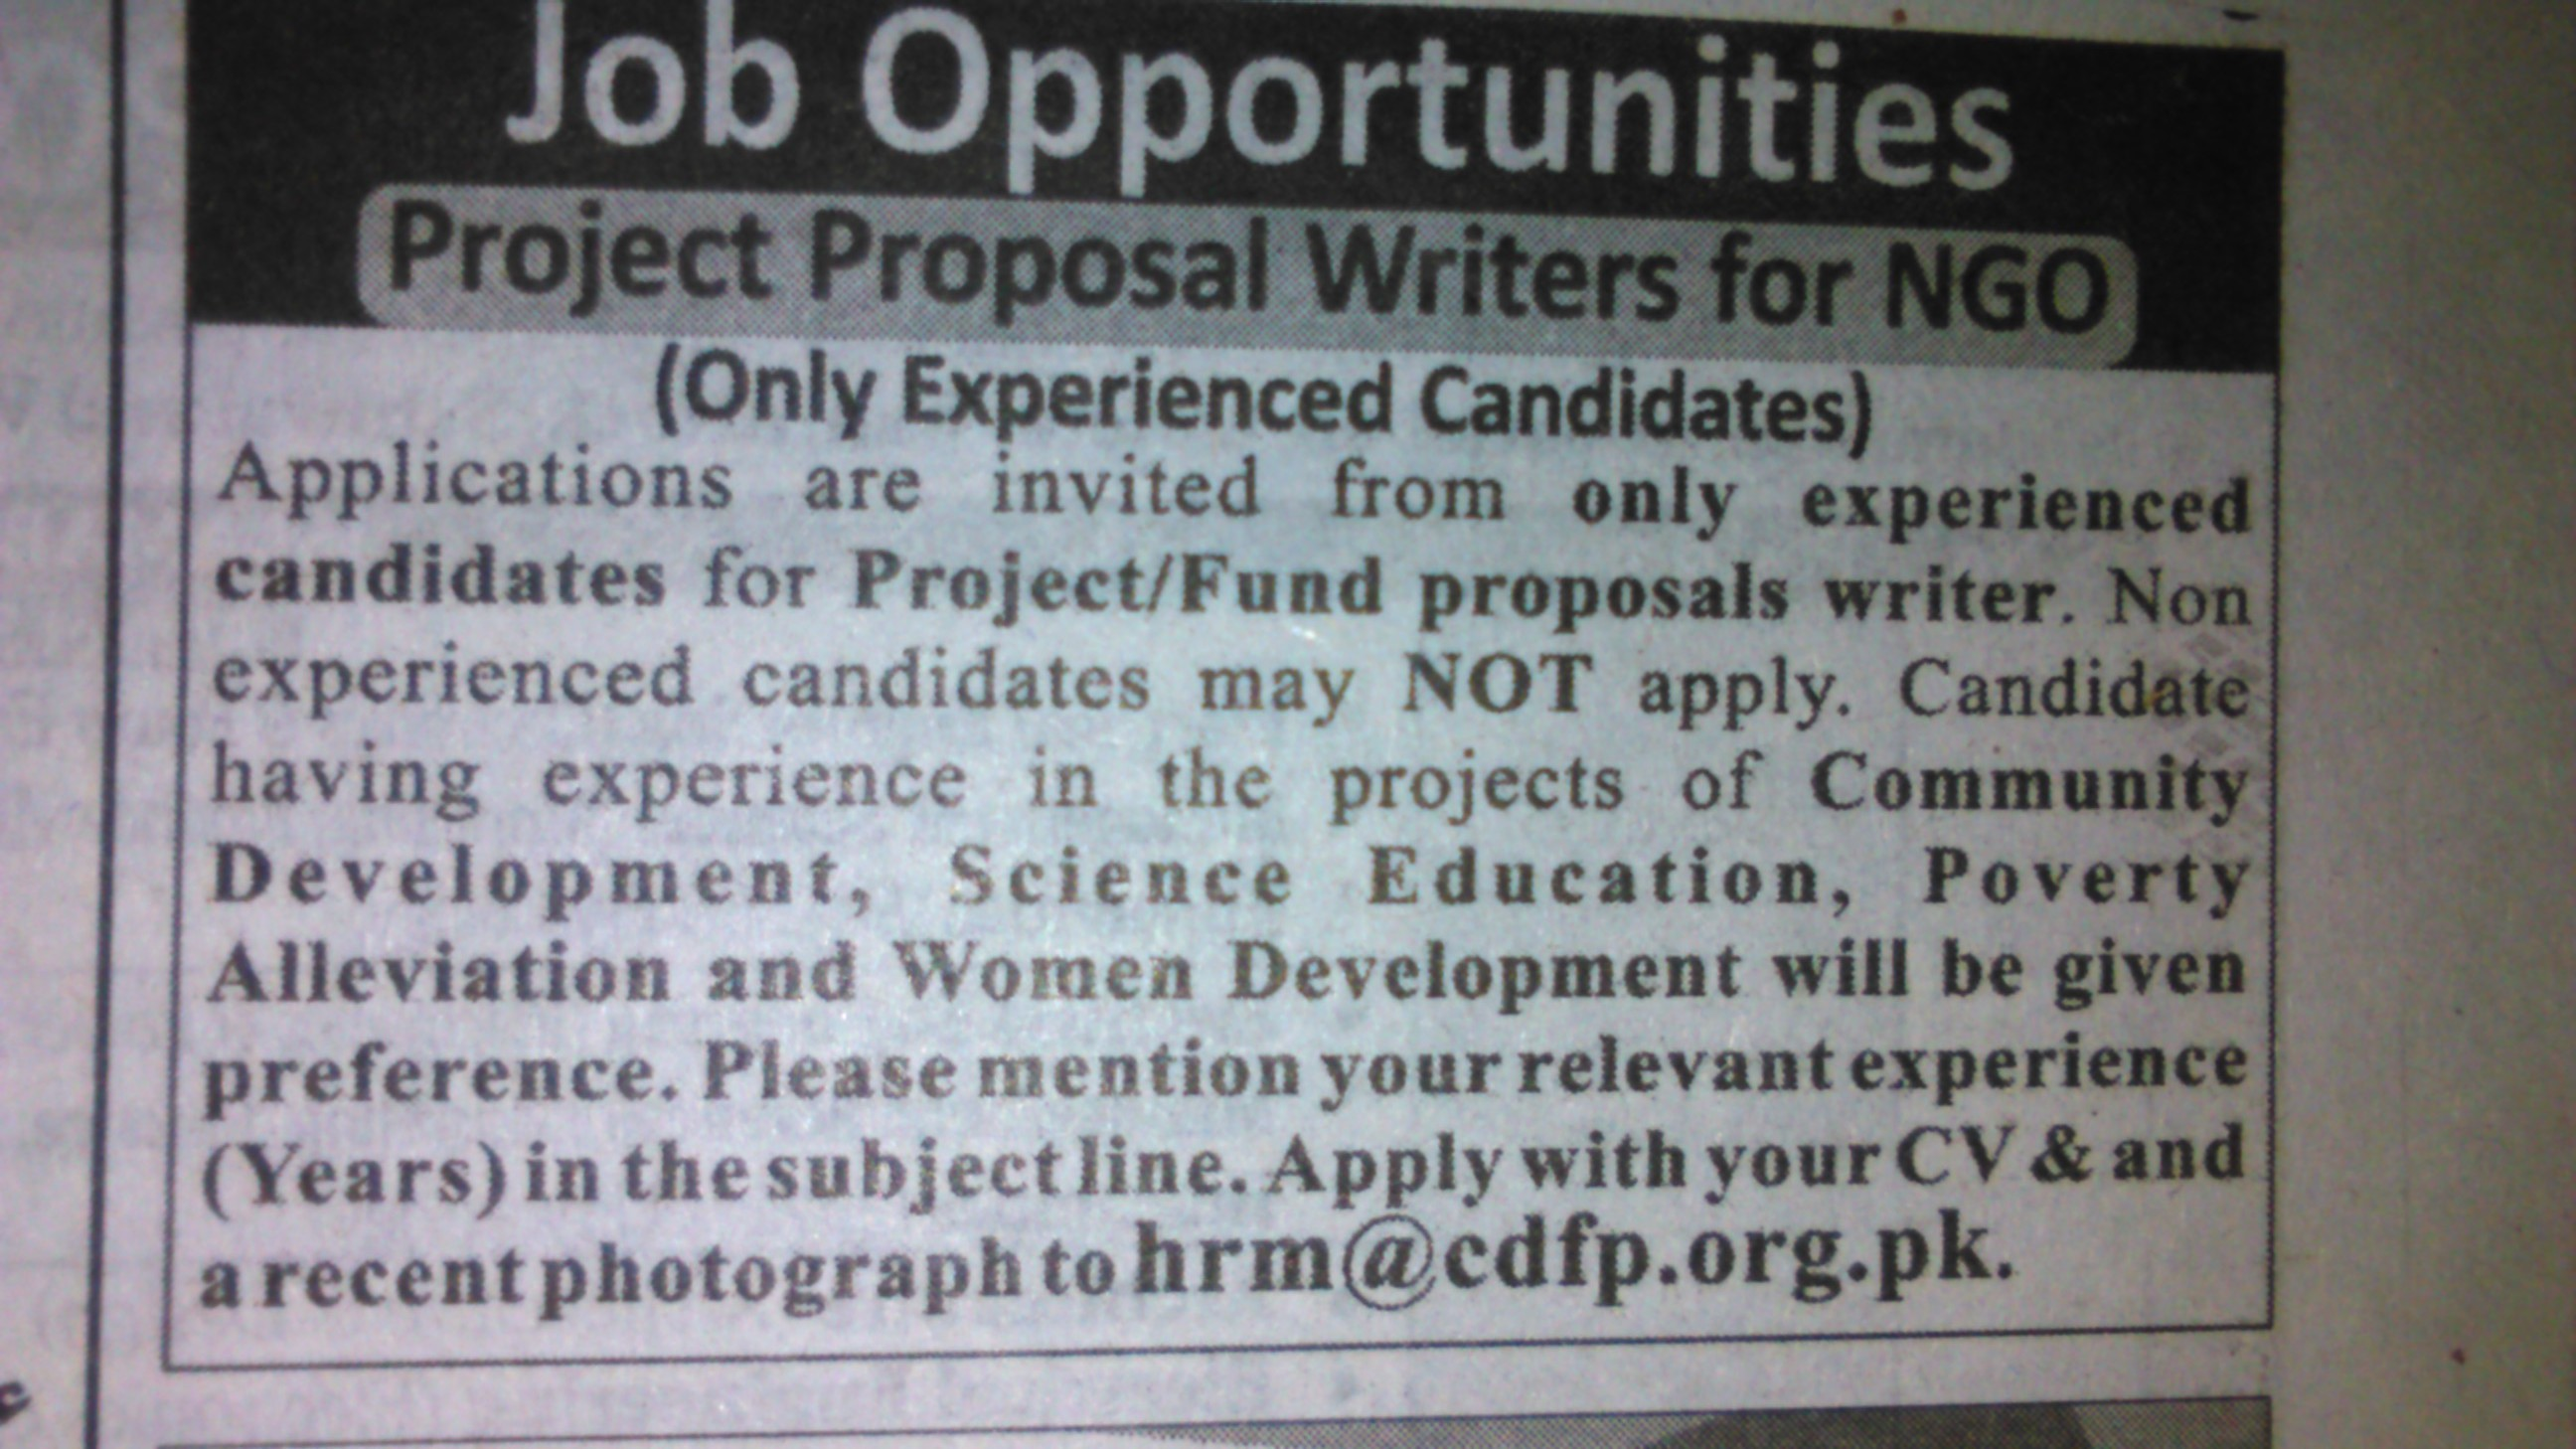 Project Proposal Writters for NGO Required